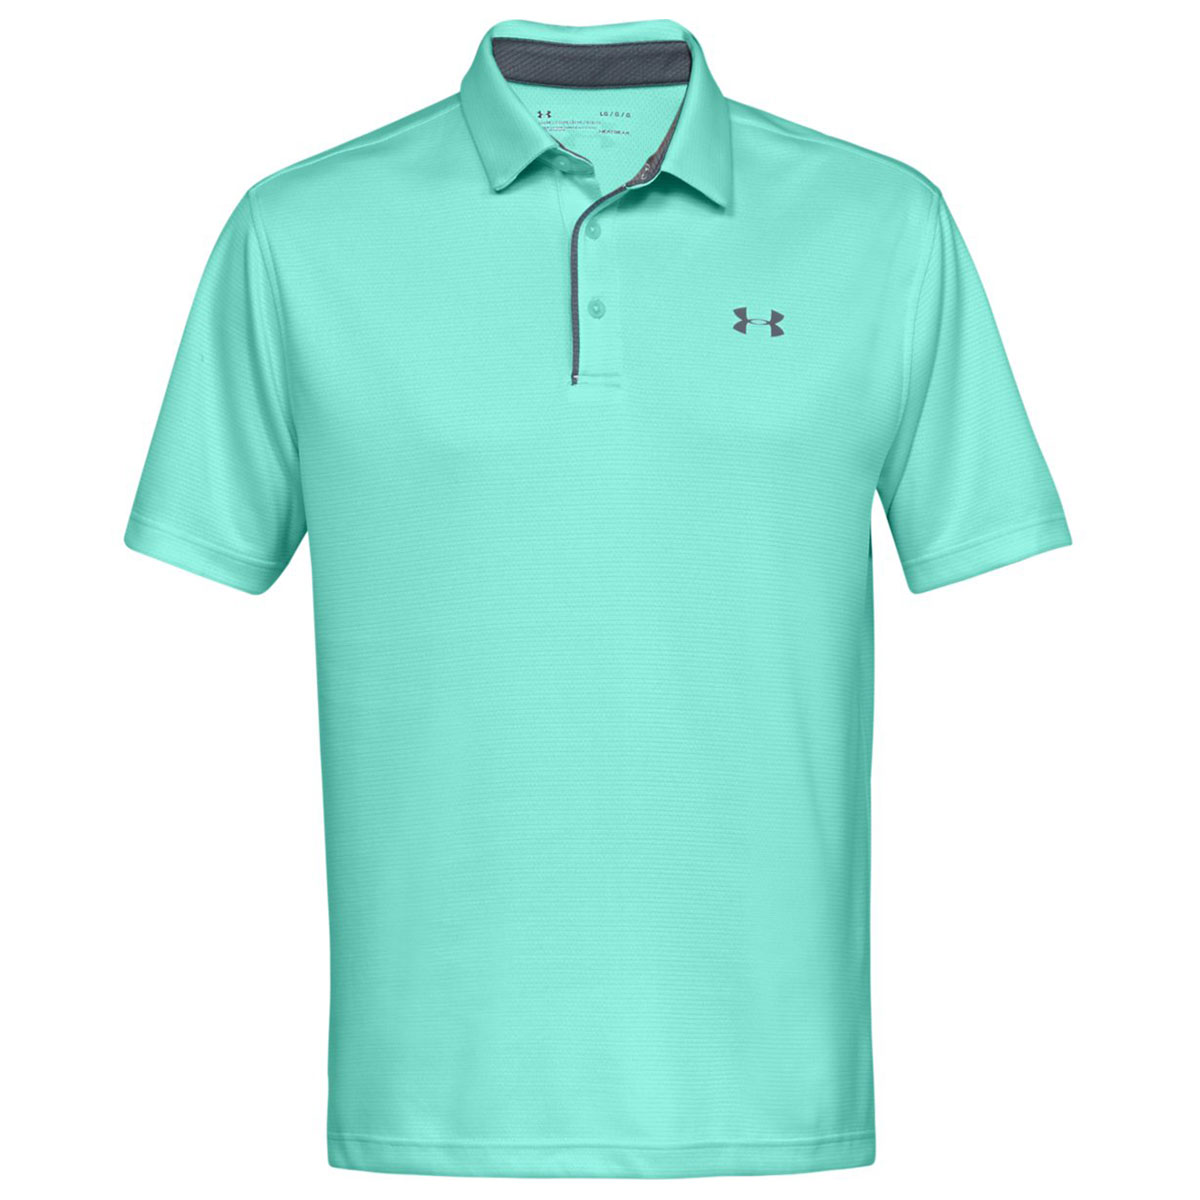 Under-Armour-Mens-2019-Golf-Tech-Wicking-Textured-Soft-Light-Polo-Shirt thumbnail 58